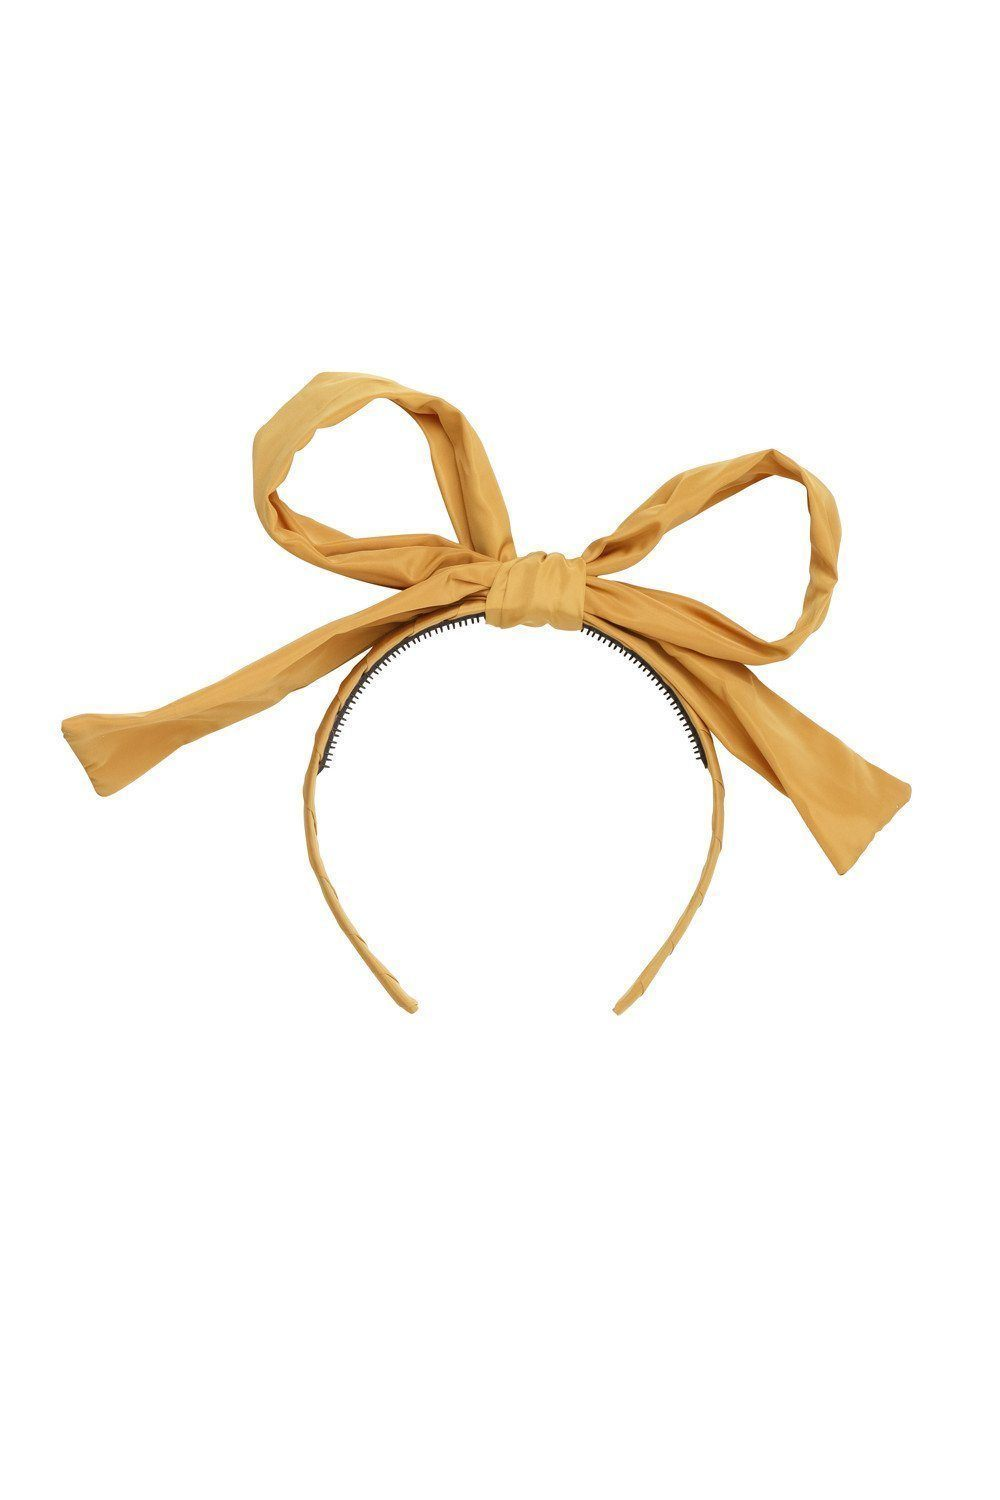 Party Bow Taffeta - Mustard - PROJECT 6, modest fashion